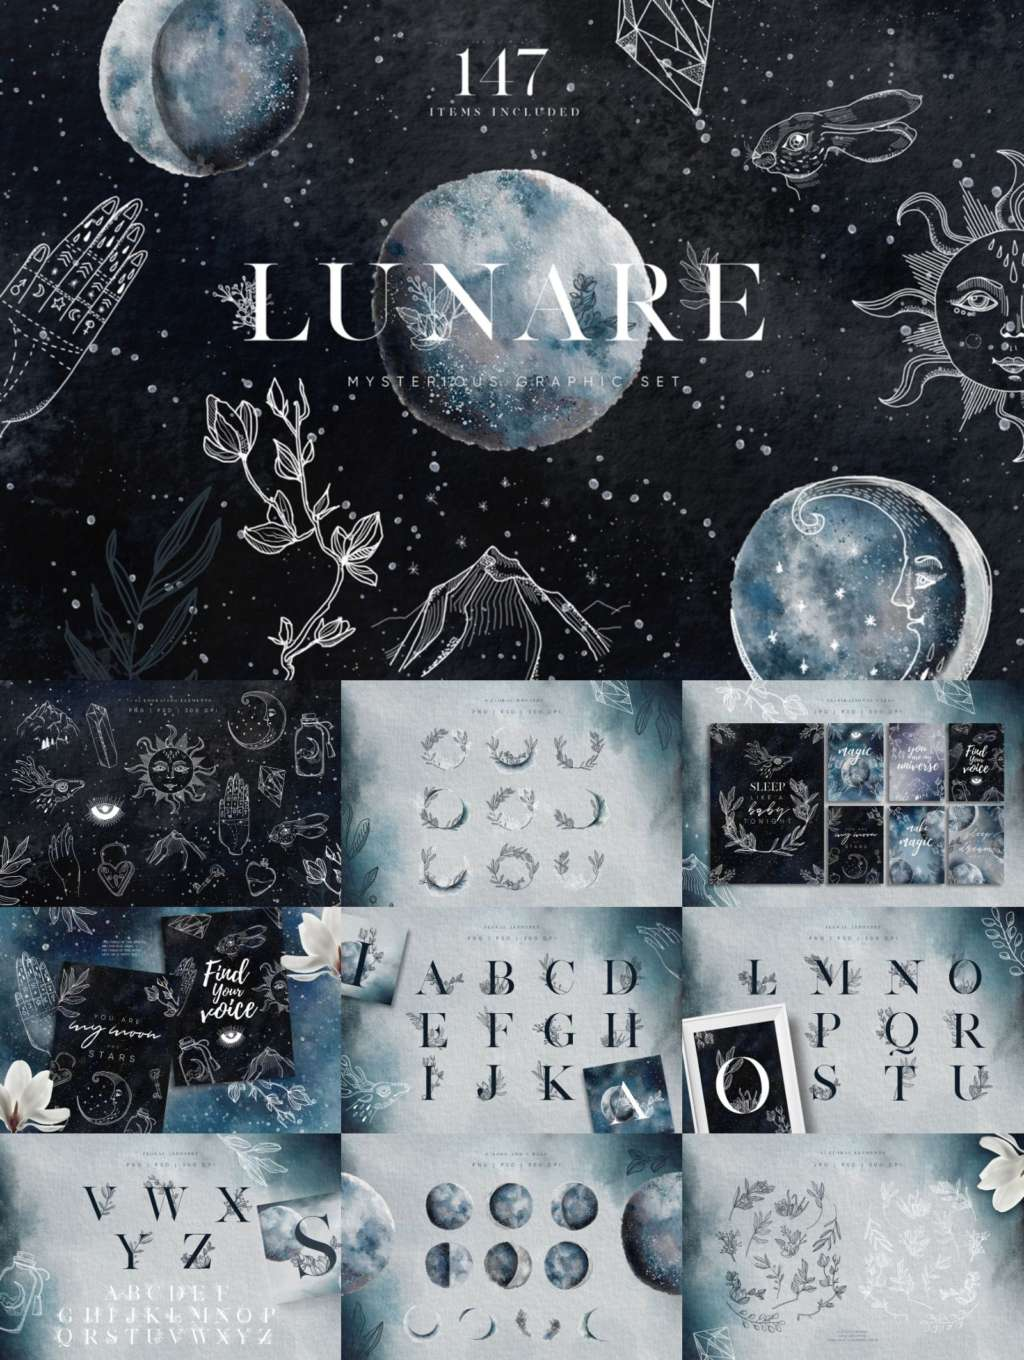 Lunare Mysterious Graphic Set